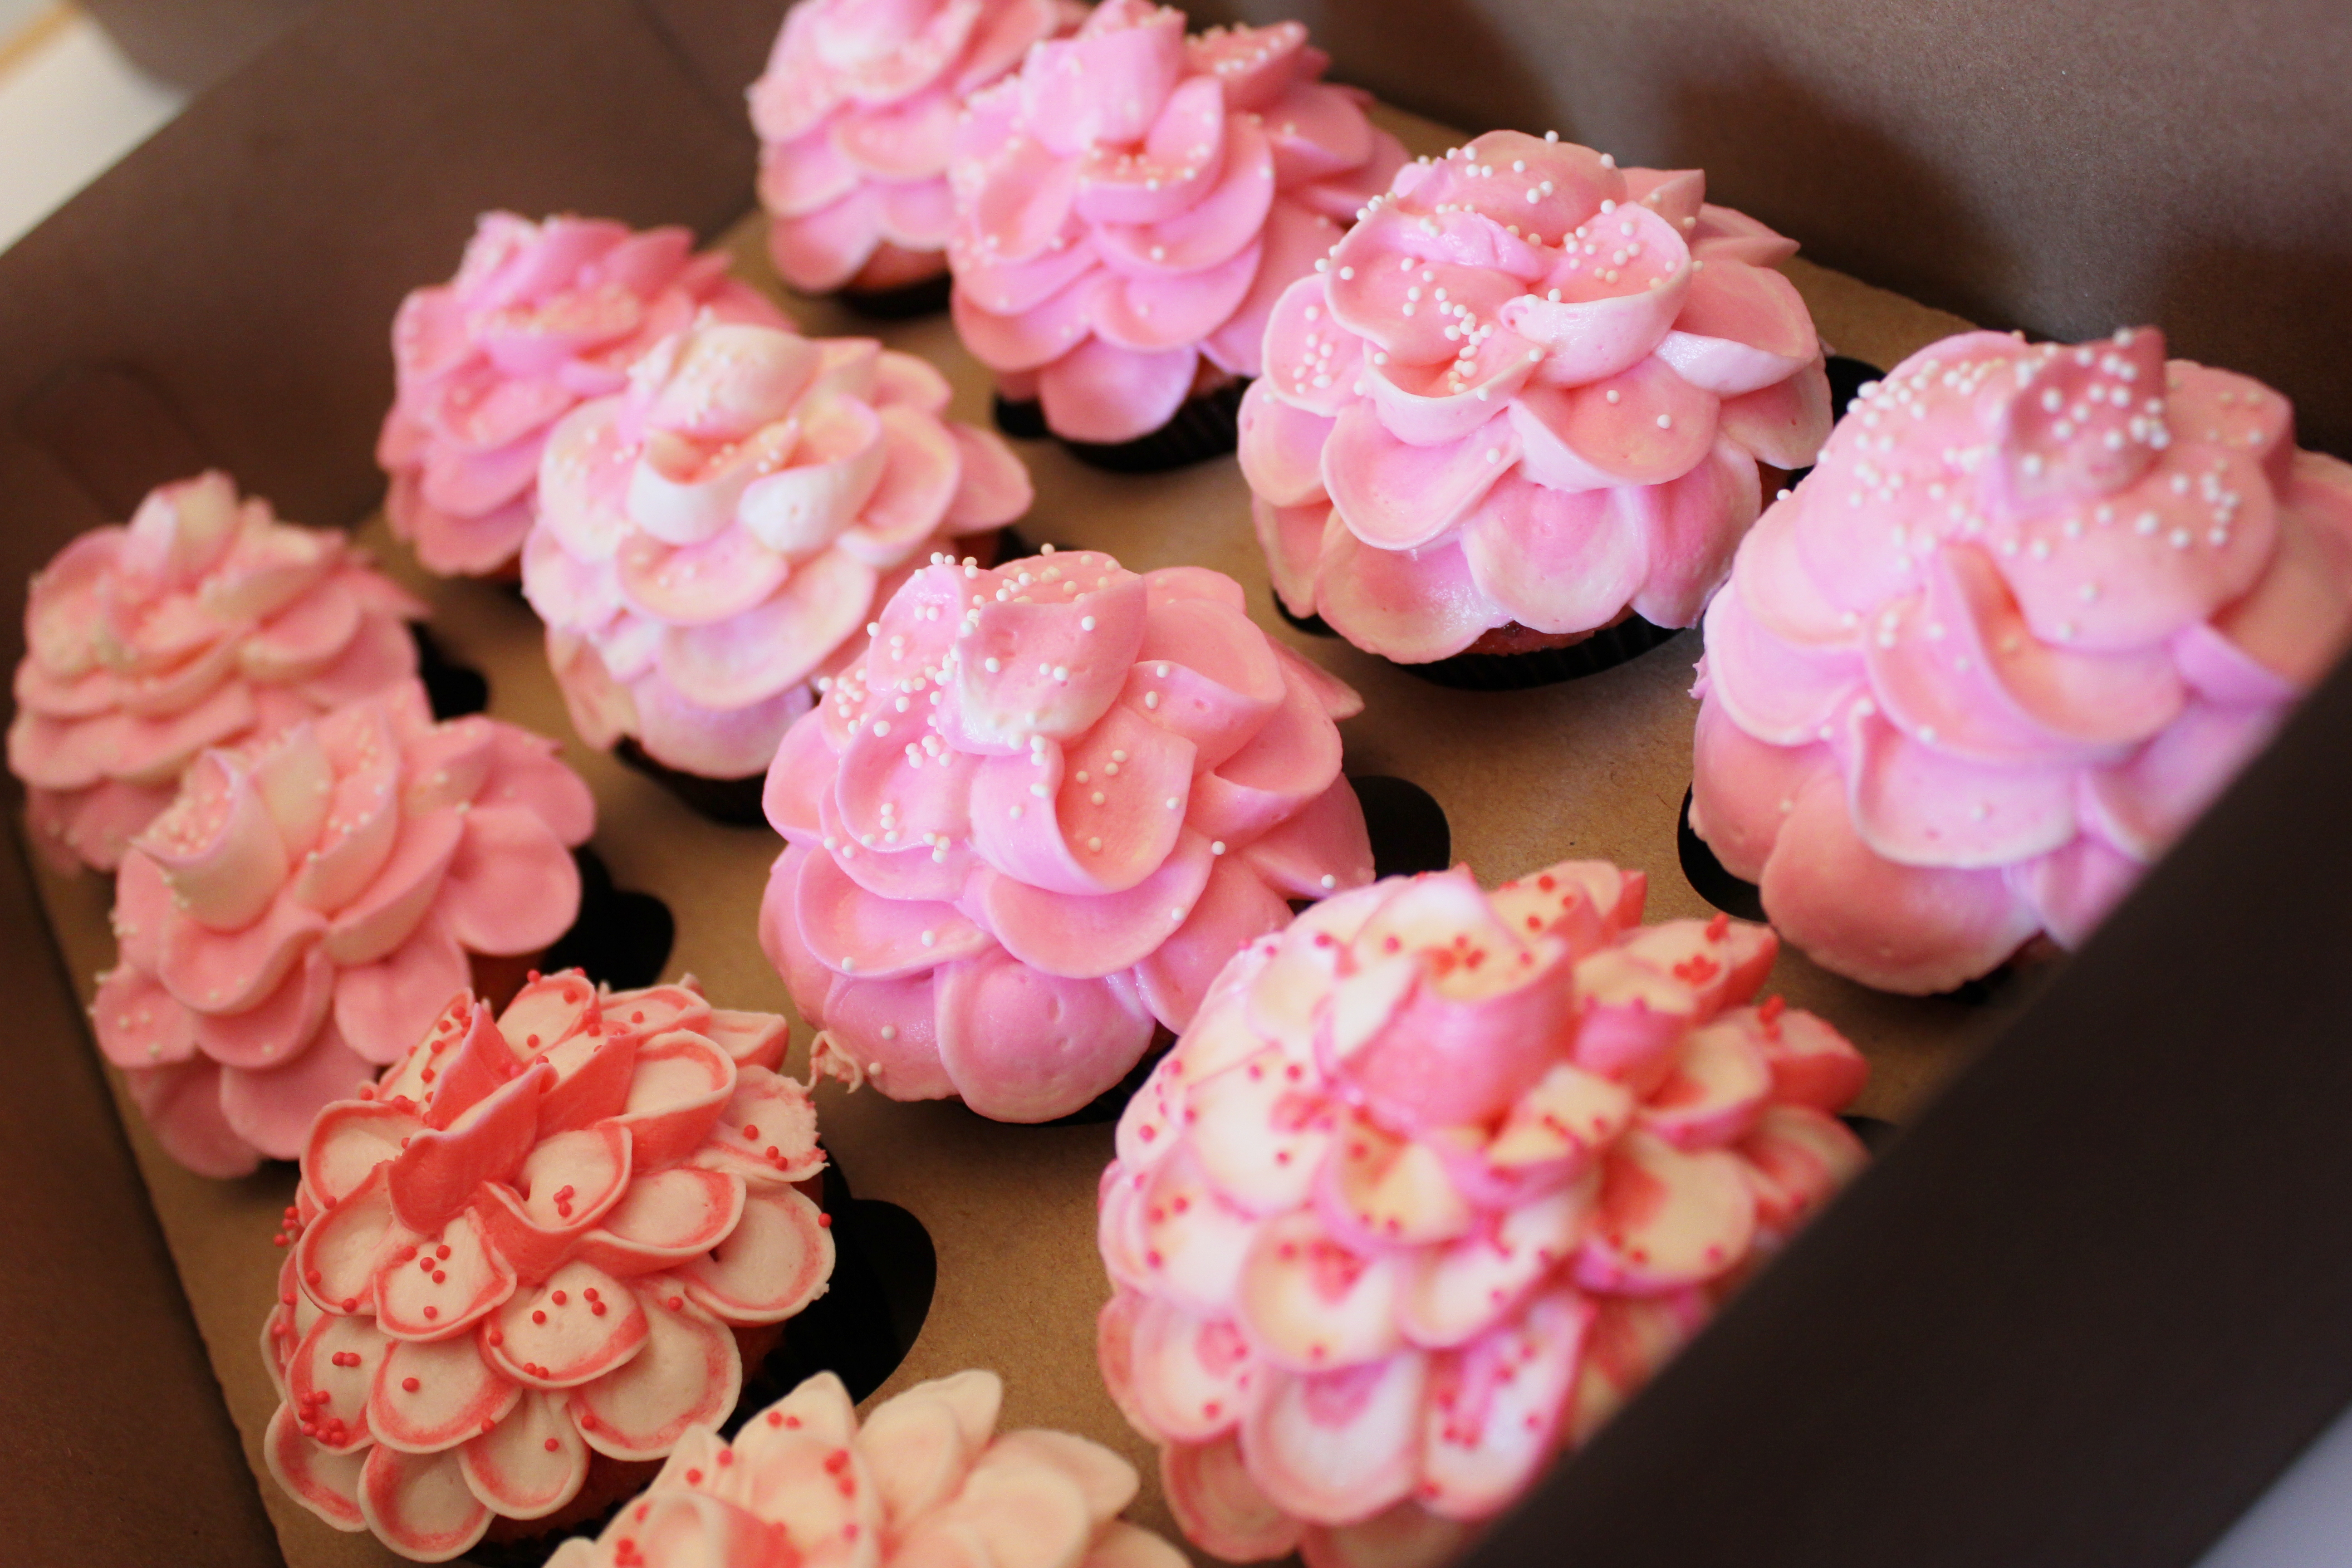 Shades Of Pink Flower Cupcakes For The Bride Cupcakes By Rach